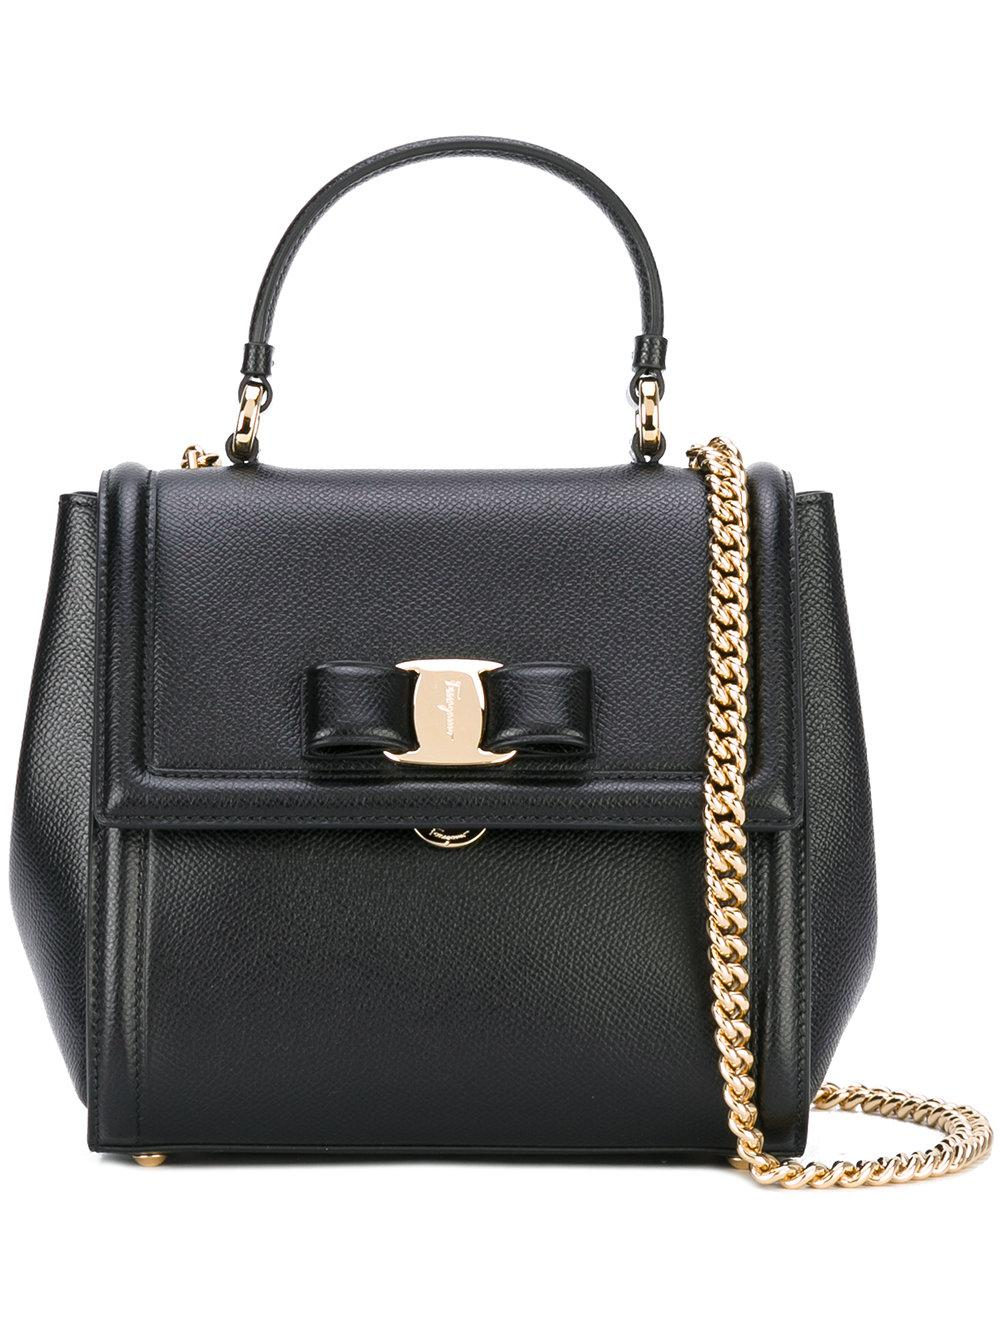 a6bb7e52d0 Lyst - Ferragamo Carrie Leather Shoulder Bag in Black - Save ...